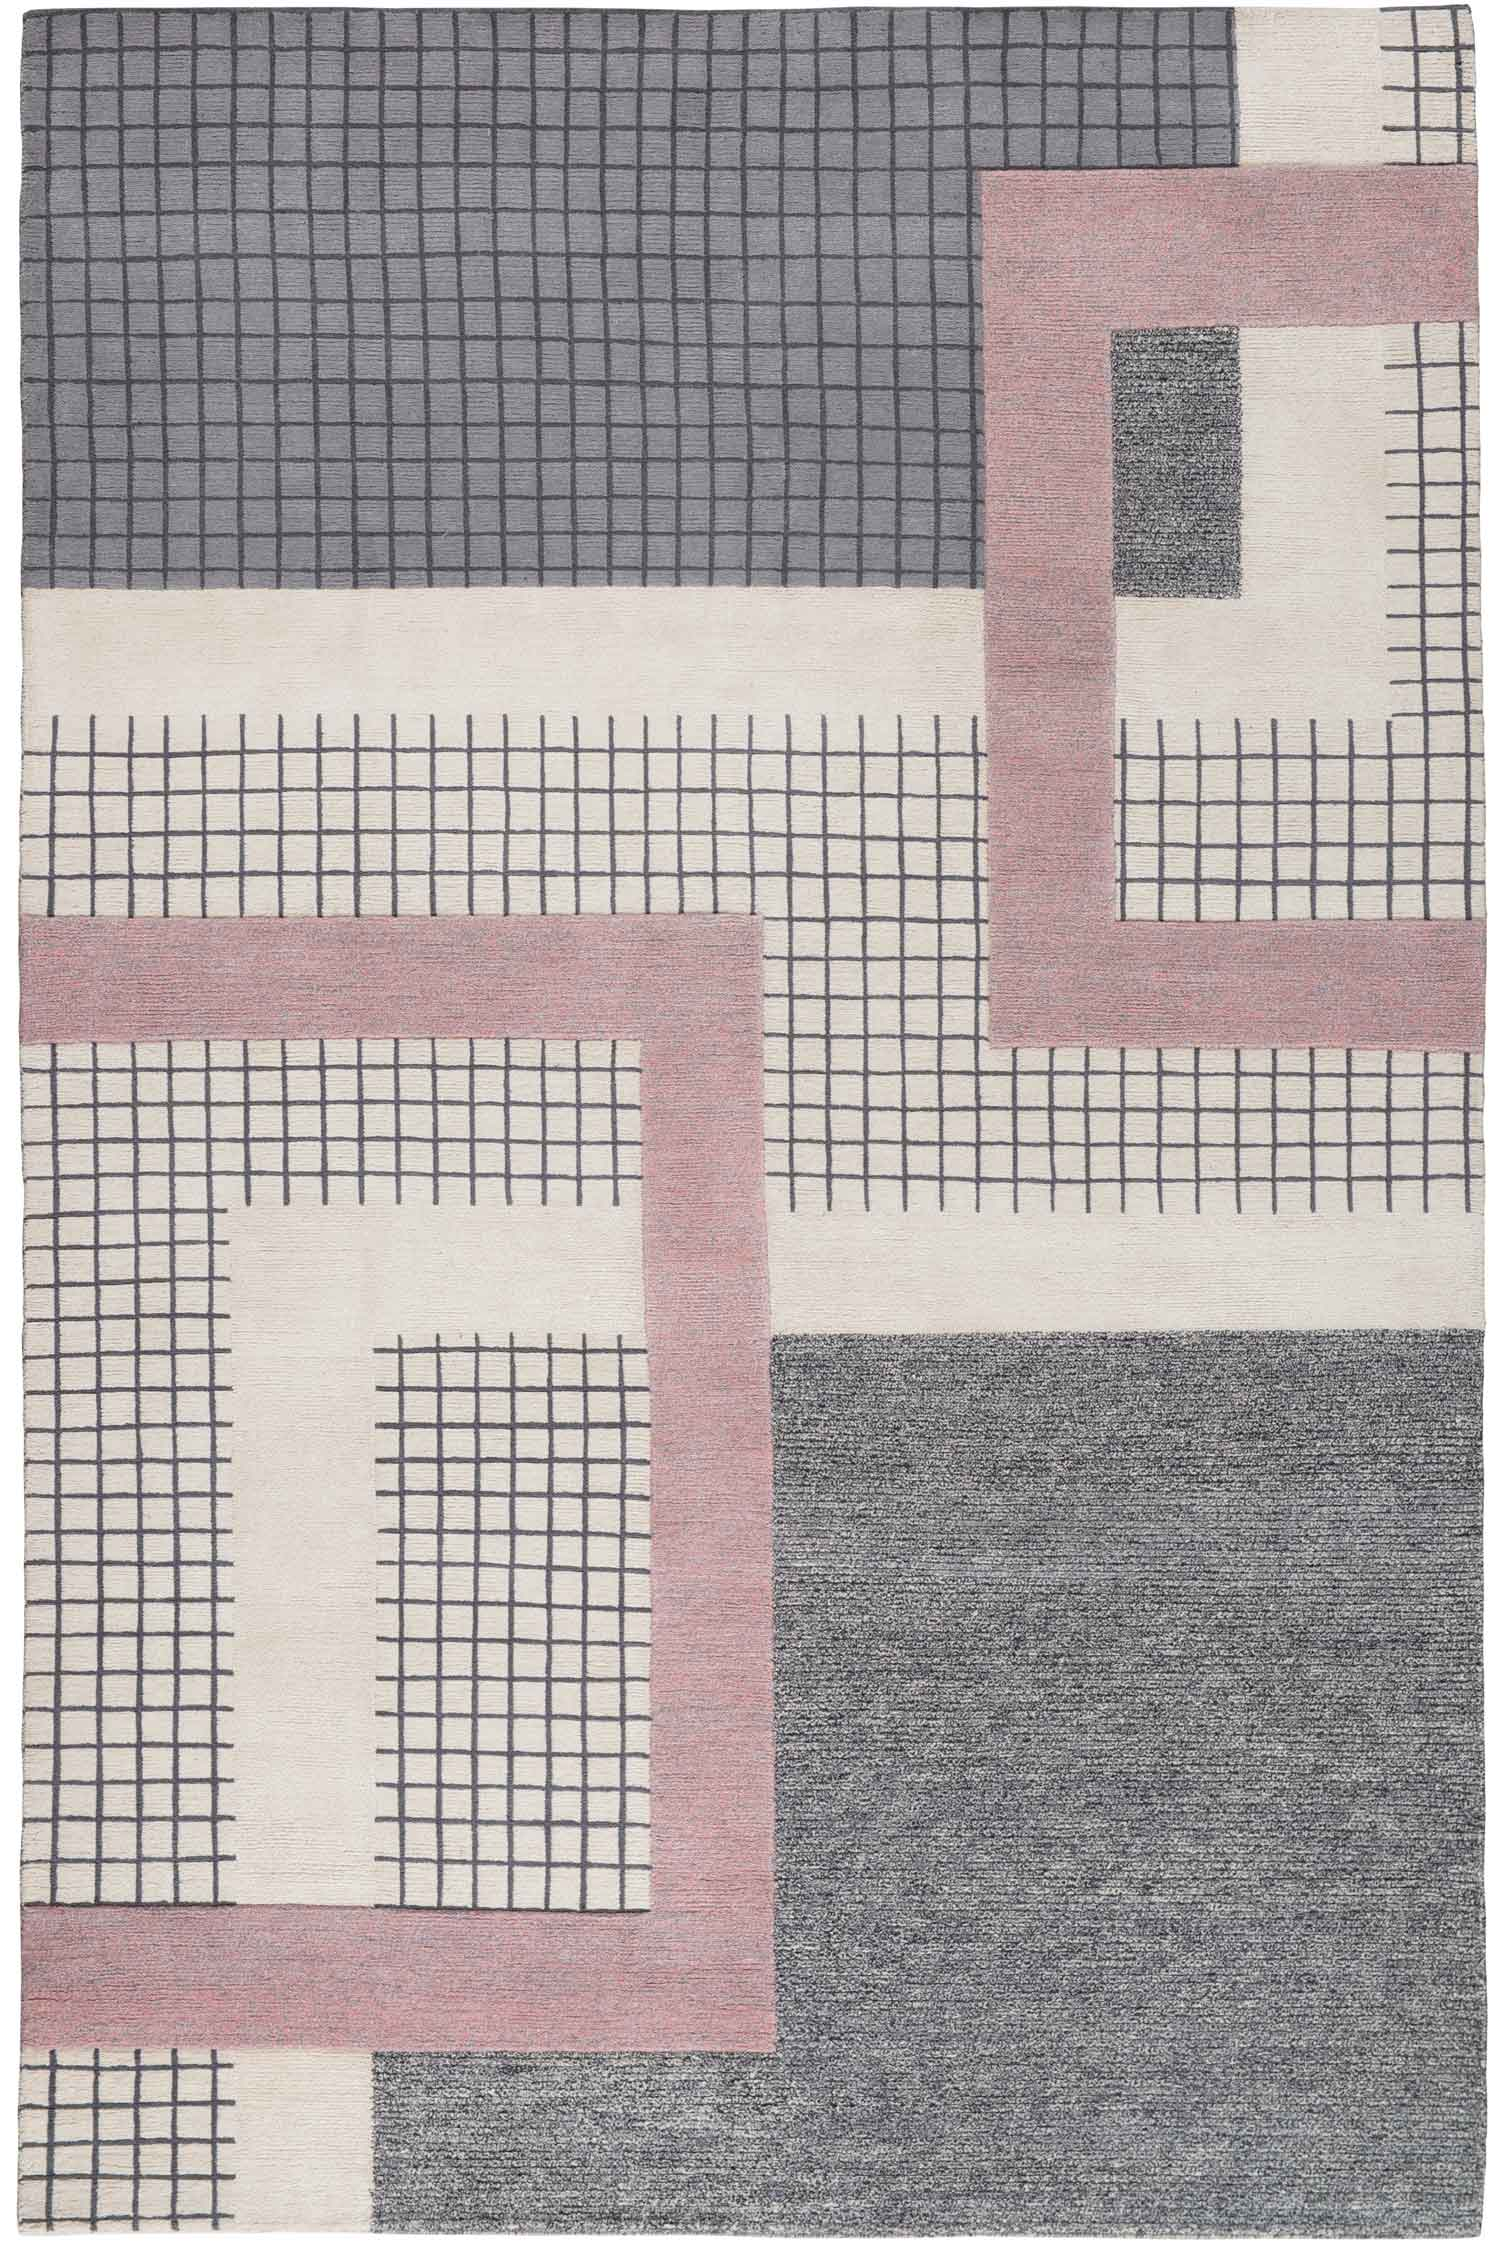 Mainland Dark The Rug Company at IMM Cologne 2018 | Yellowtrace